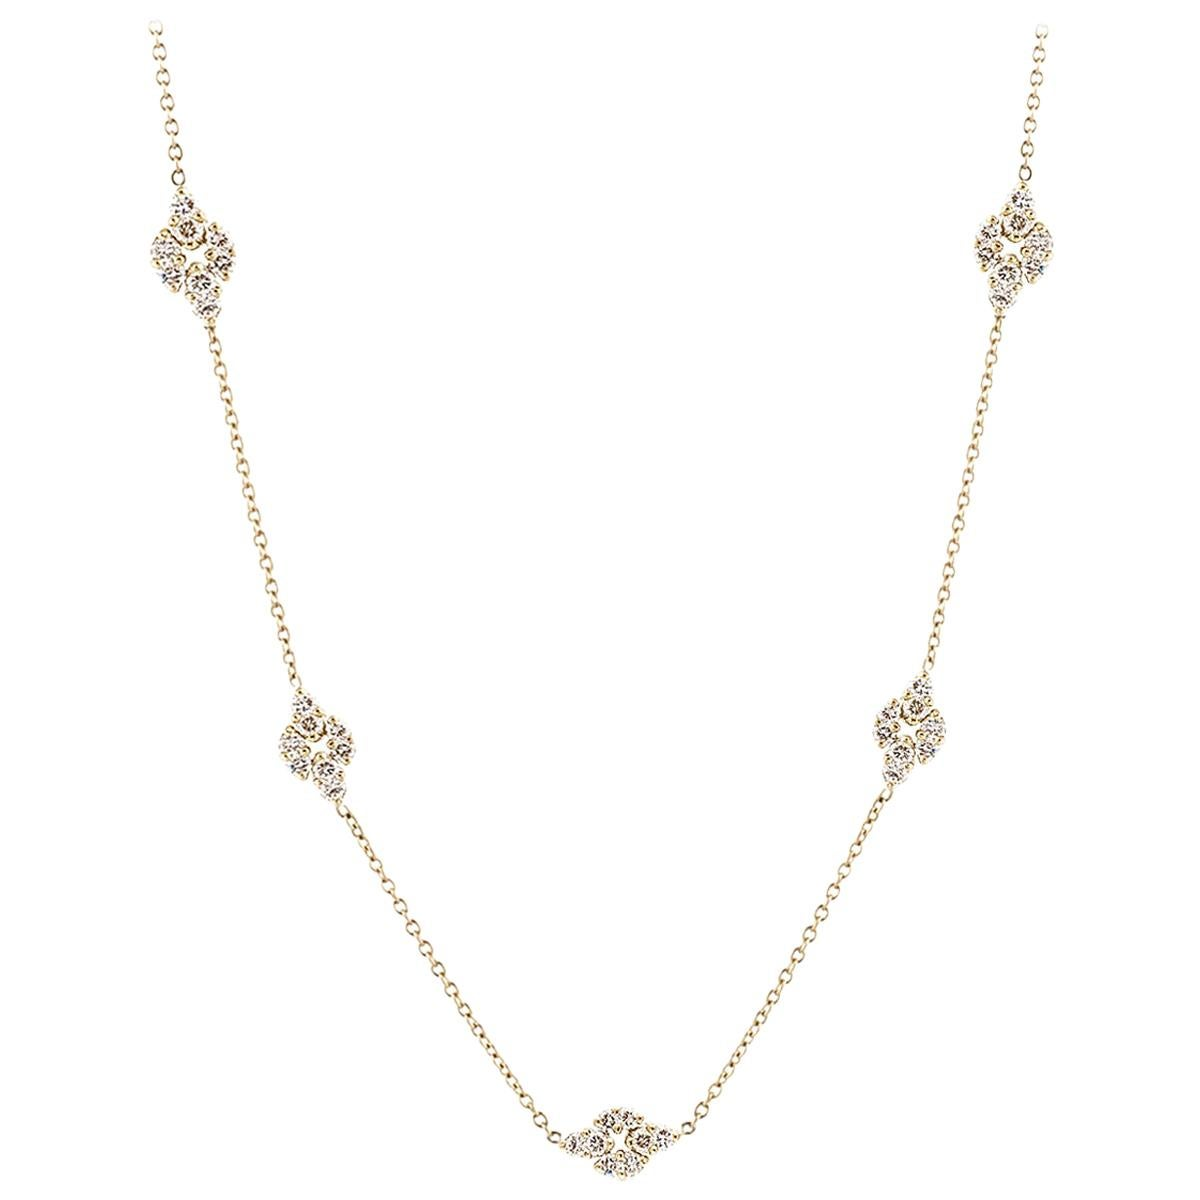 Long Chain Necklace with Diamond Stations in 18K Gold